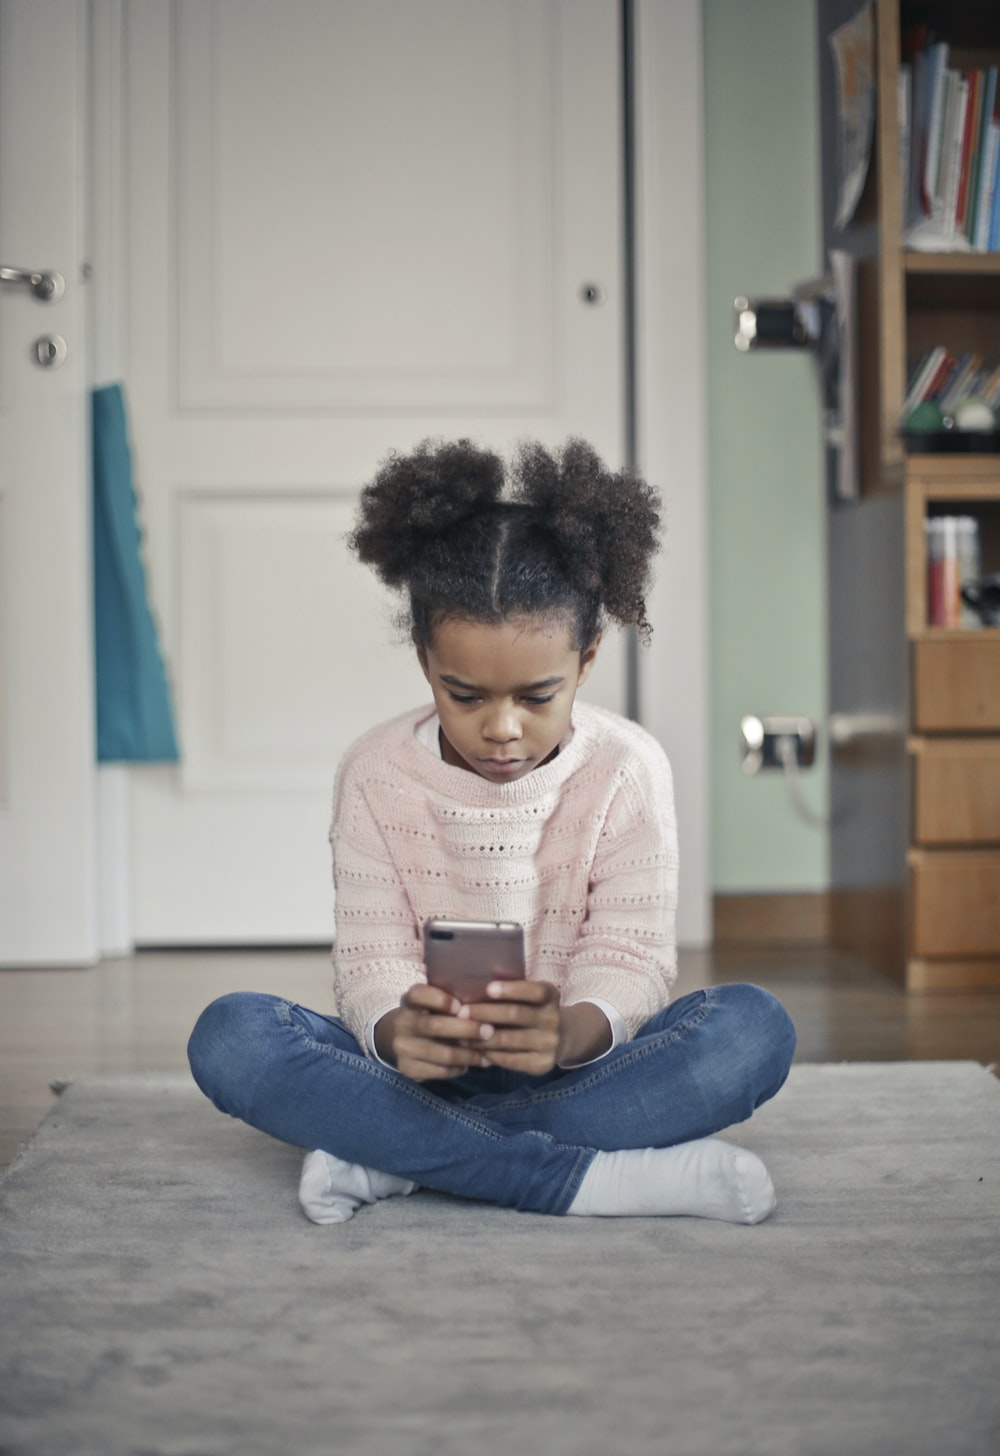 girl in white sweater and blue denim jeans sitting on floor